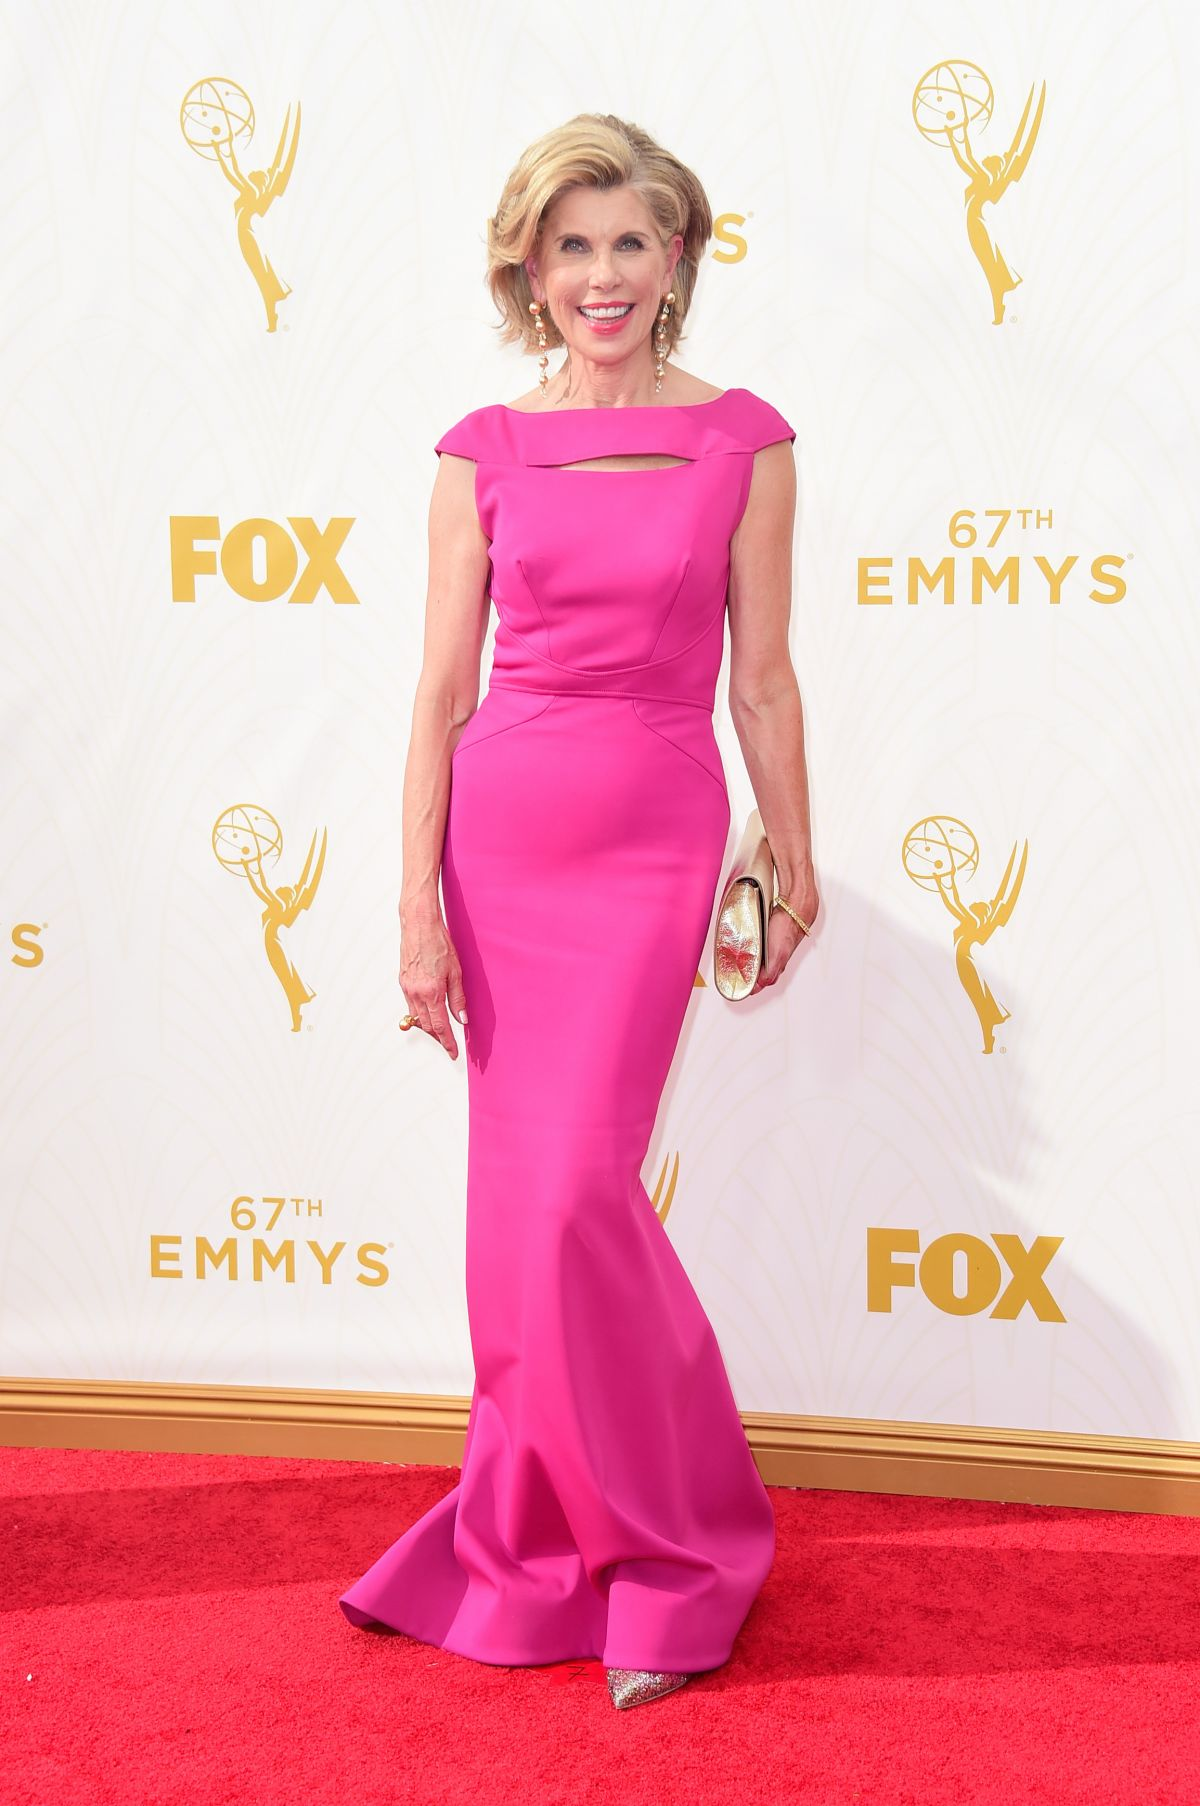 CHRISTINE BARANSKI at 2015 Emmy Awards in Los Angeles 09/20/2015